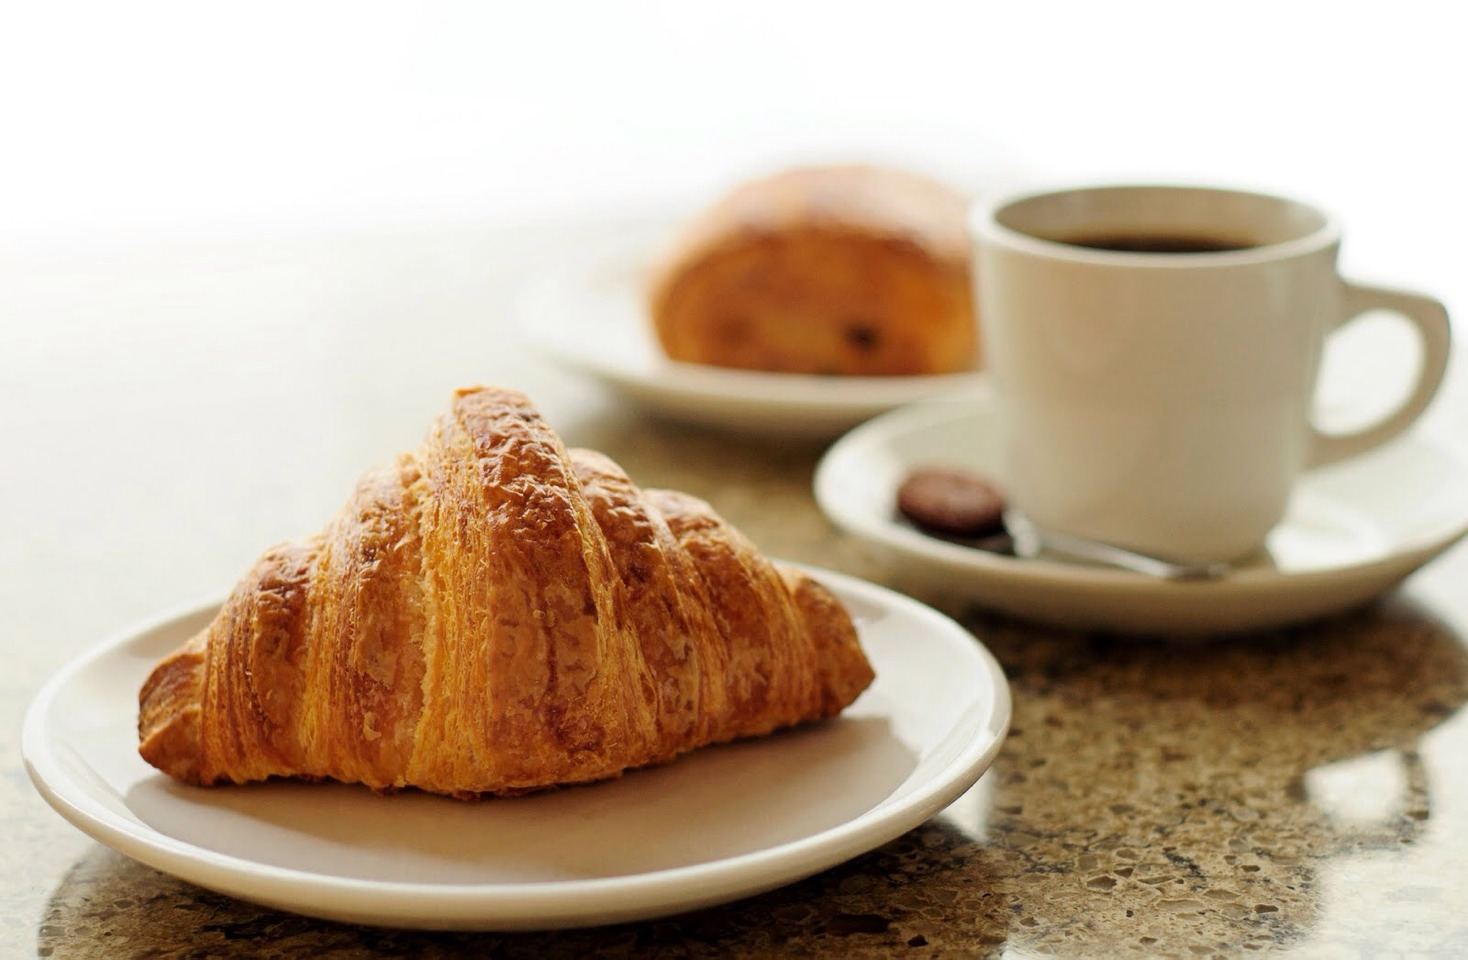 Related bribe: for example, if you get a good mark on a French test buy yourself a croissant!